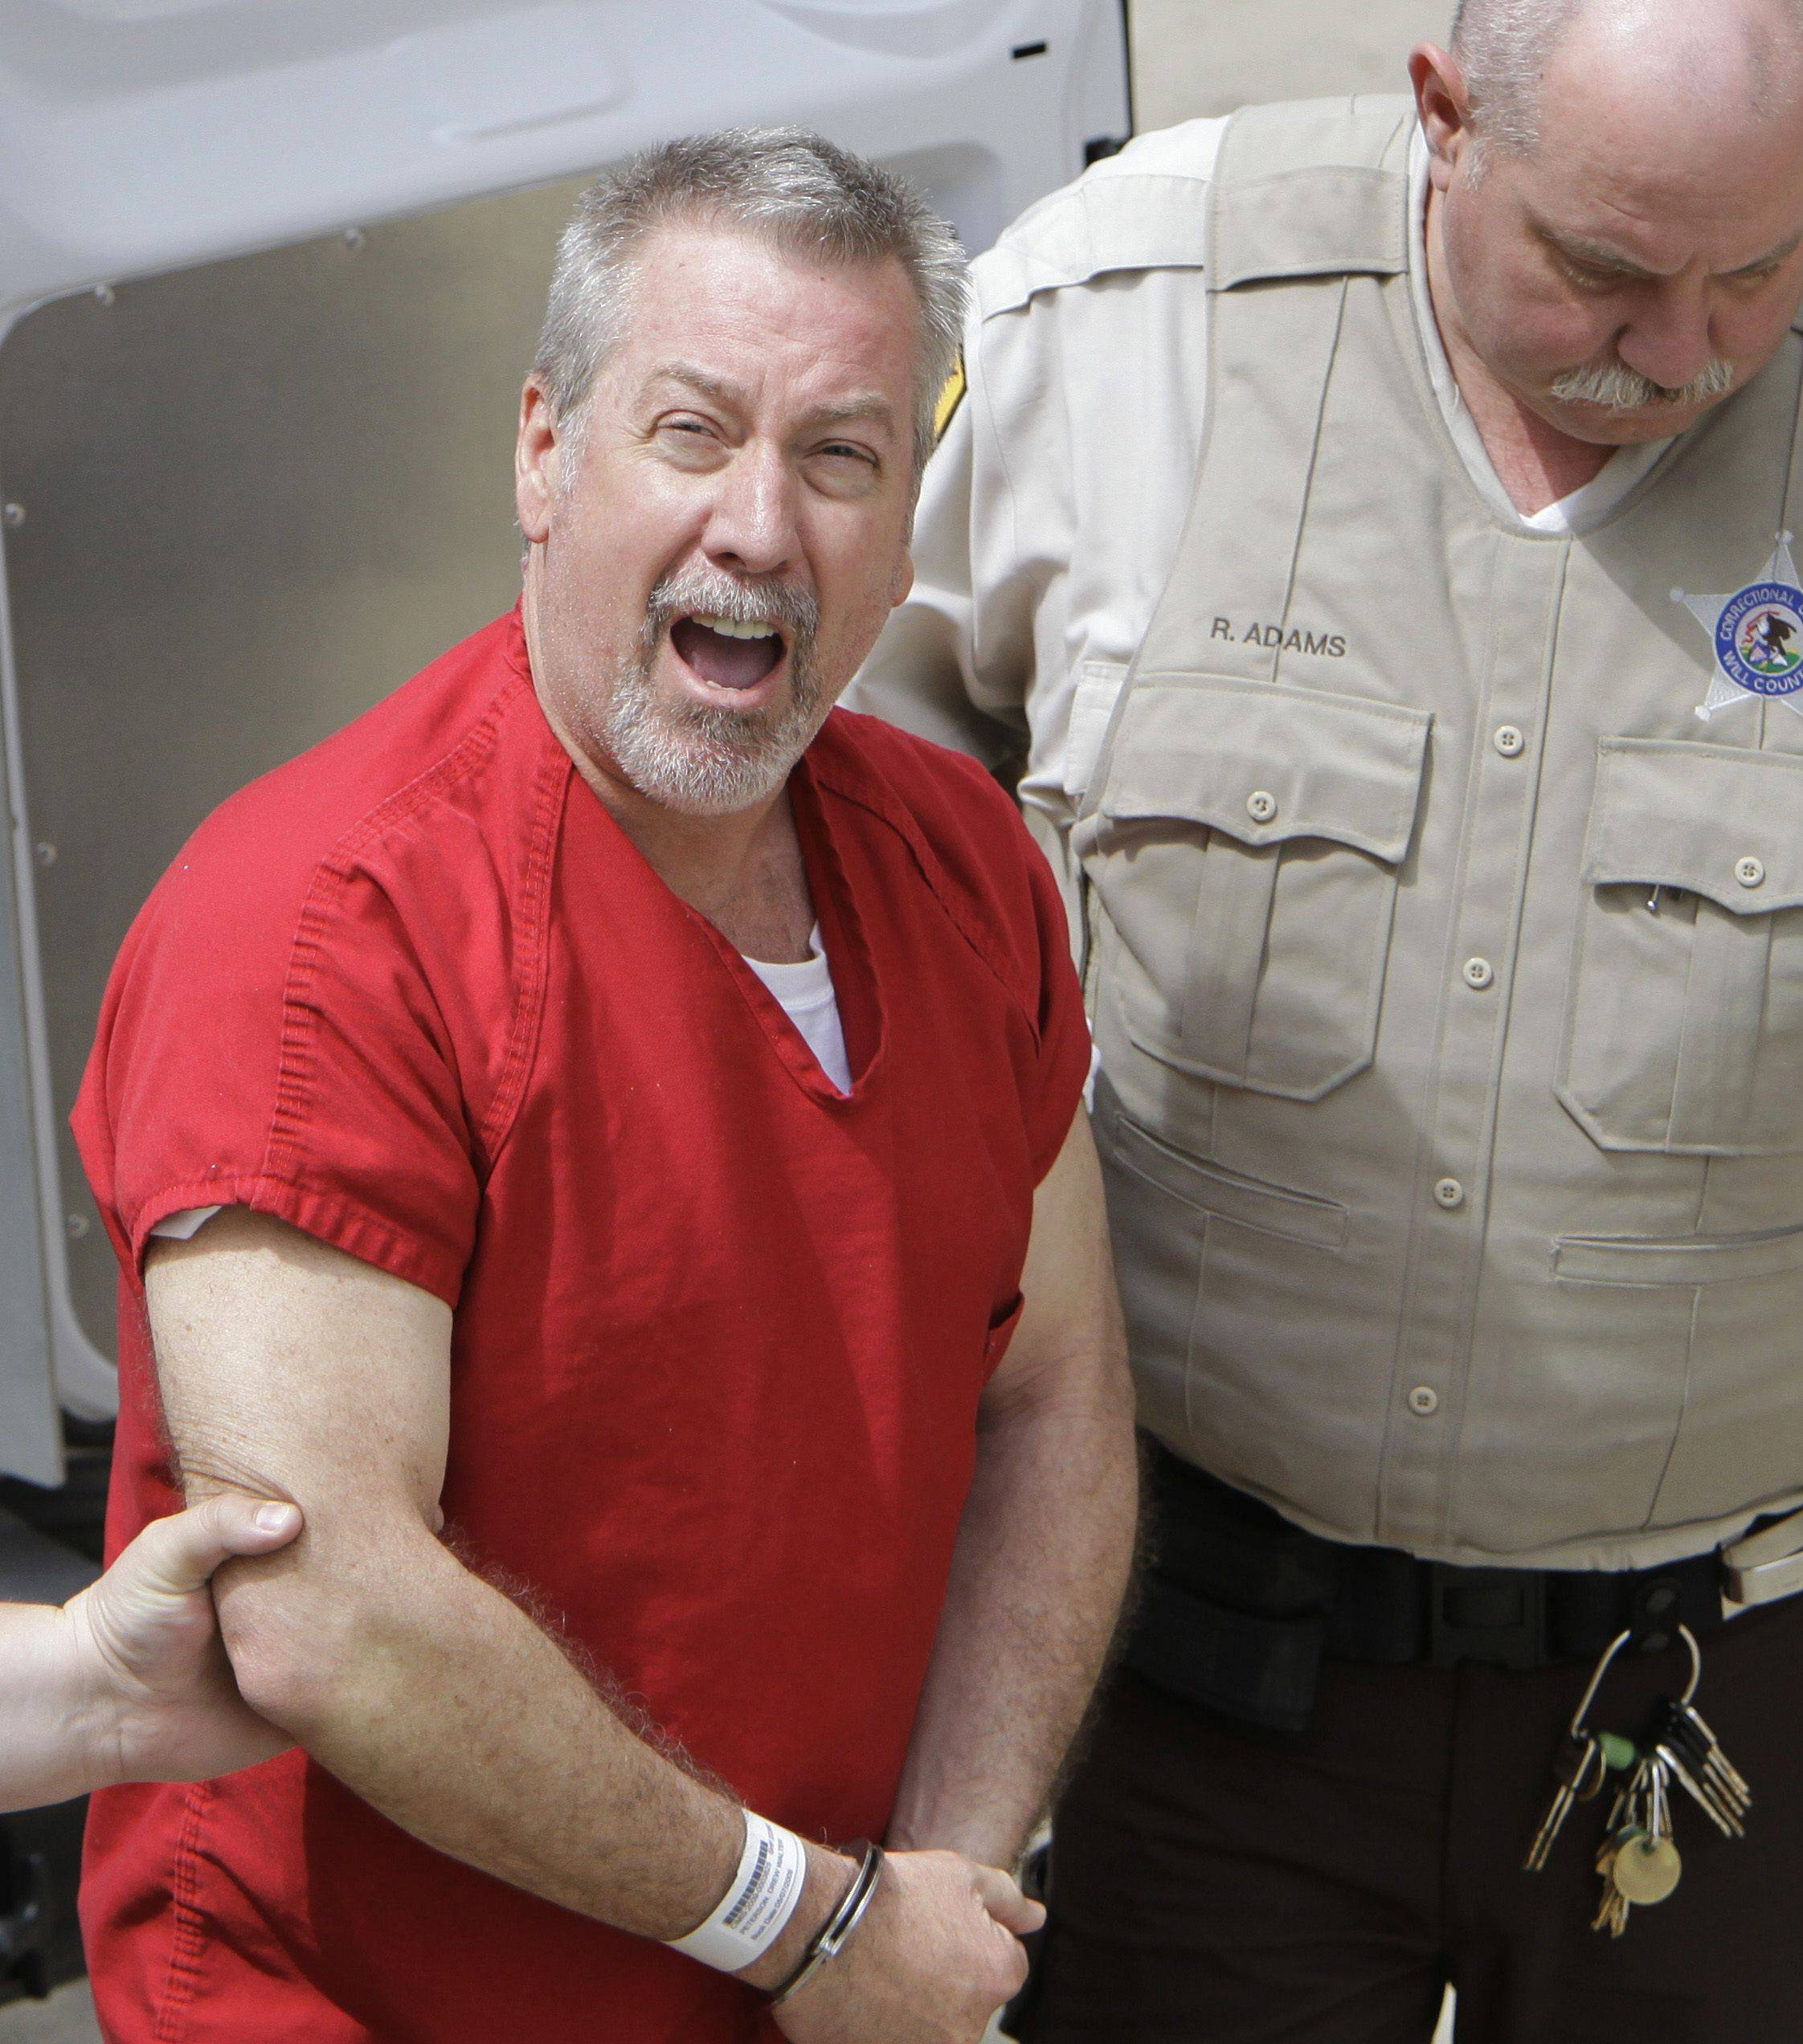 Former Bolingbrook police sergeant Drew Peterson yells to reporters as he arrives at the Will County Courthouse in Joliet. New Illinois Supreme Court rules could allow cameras in the courtroom for his trial proceedings.